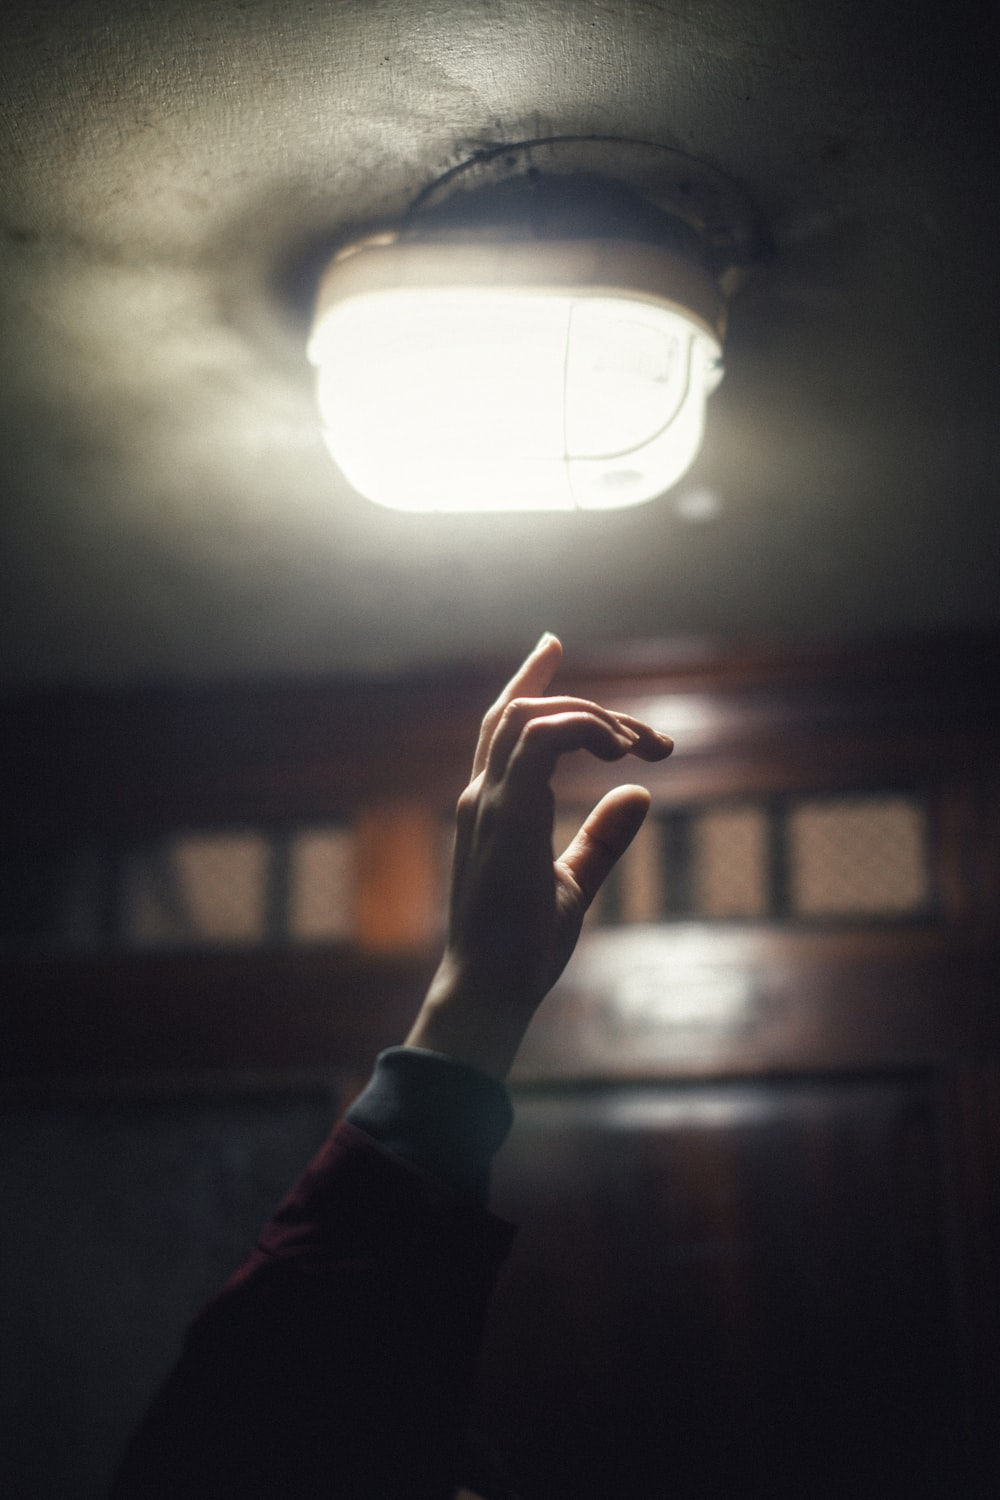 person about to touch light